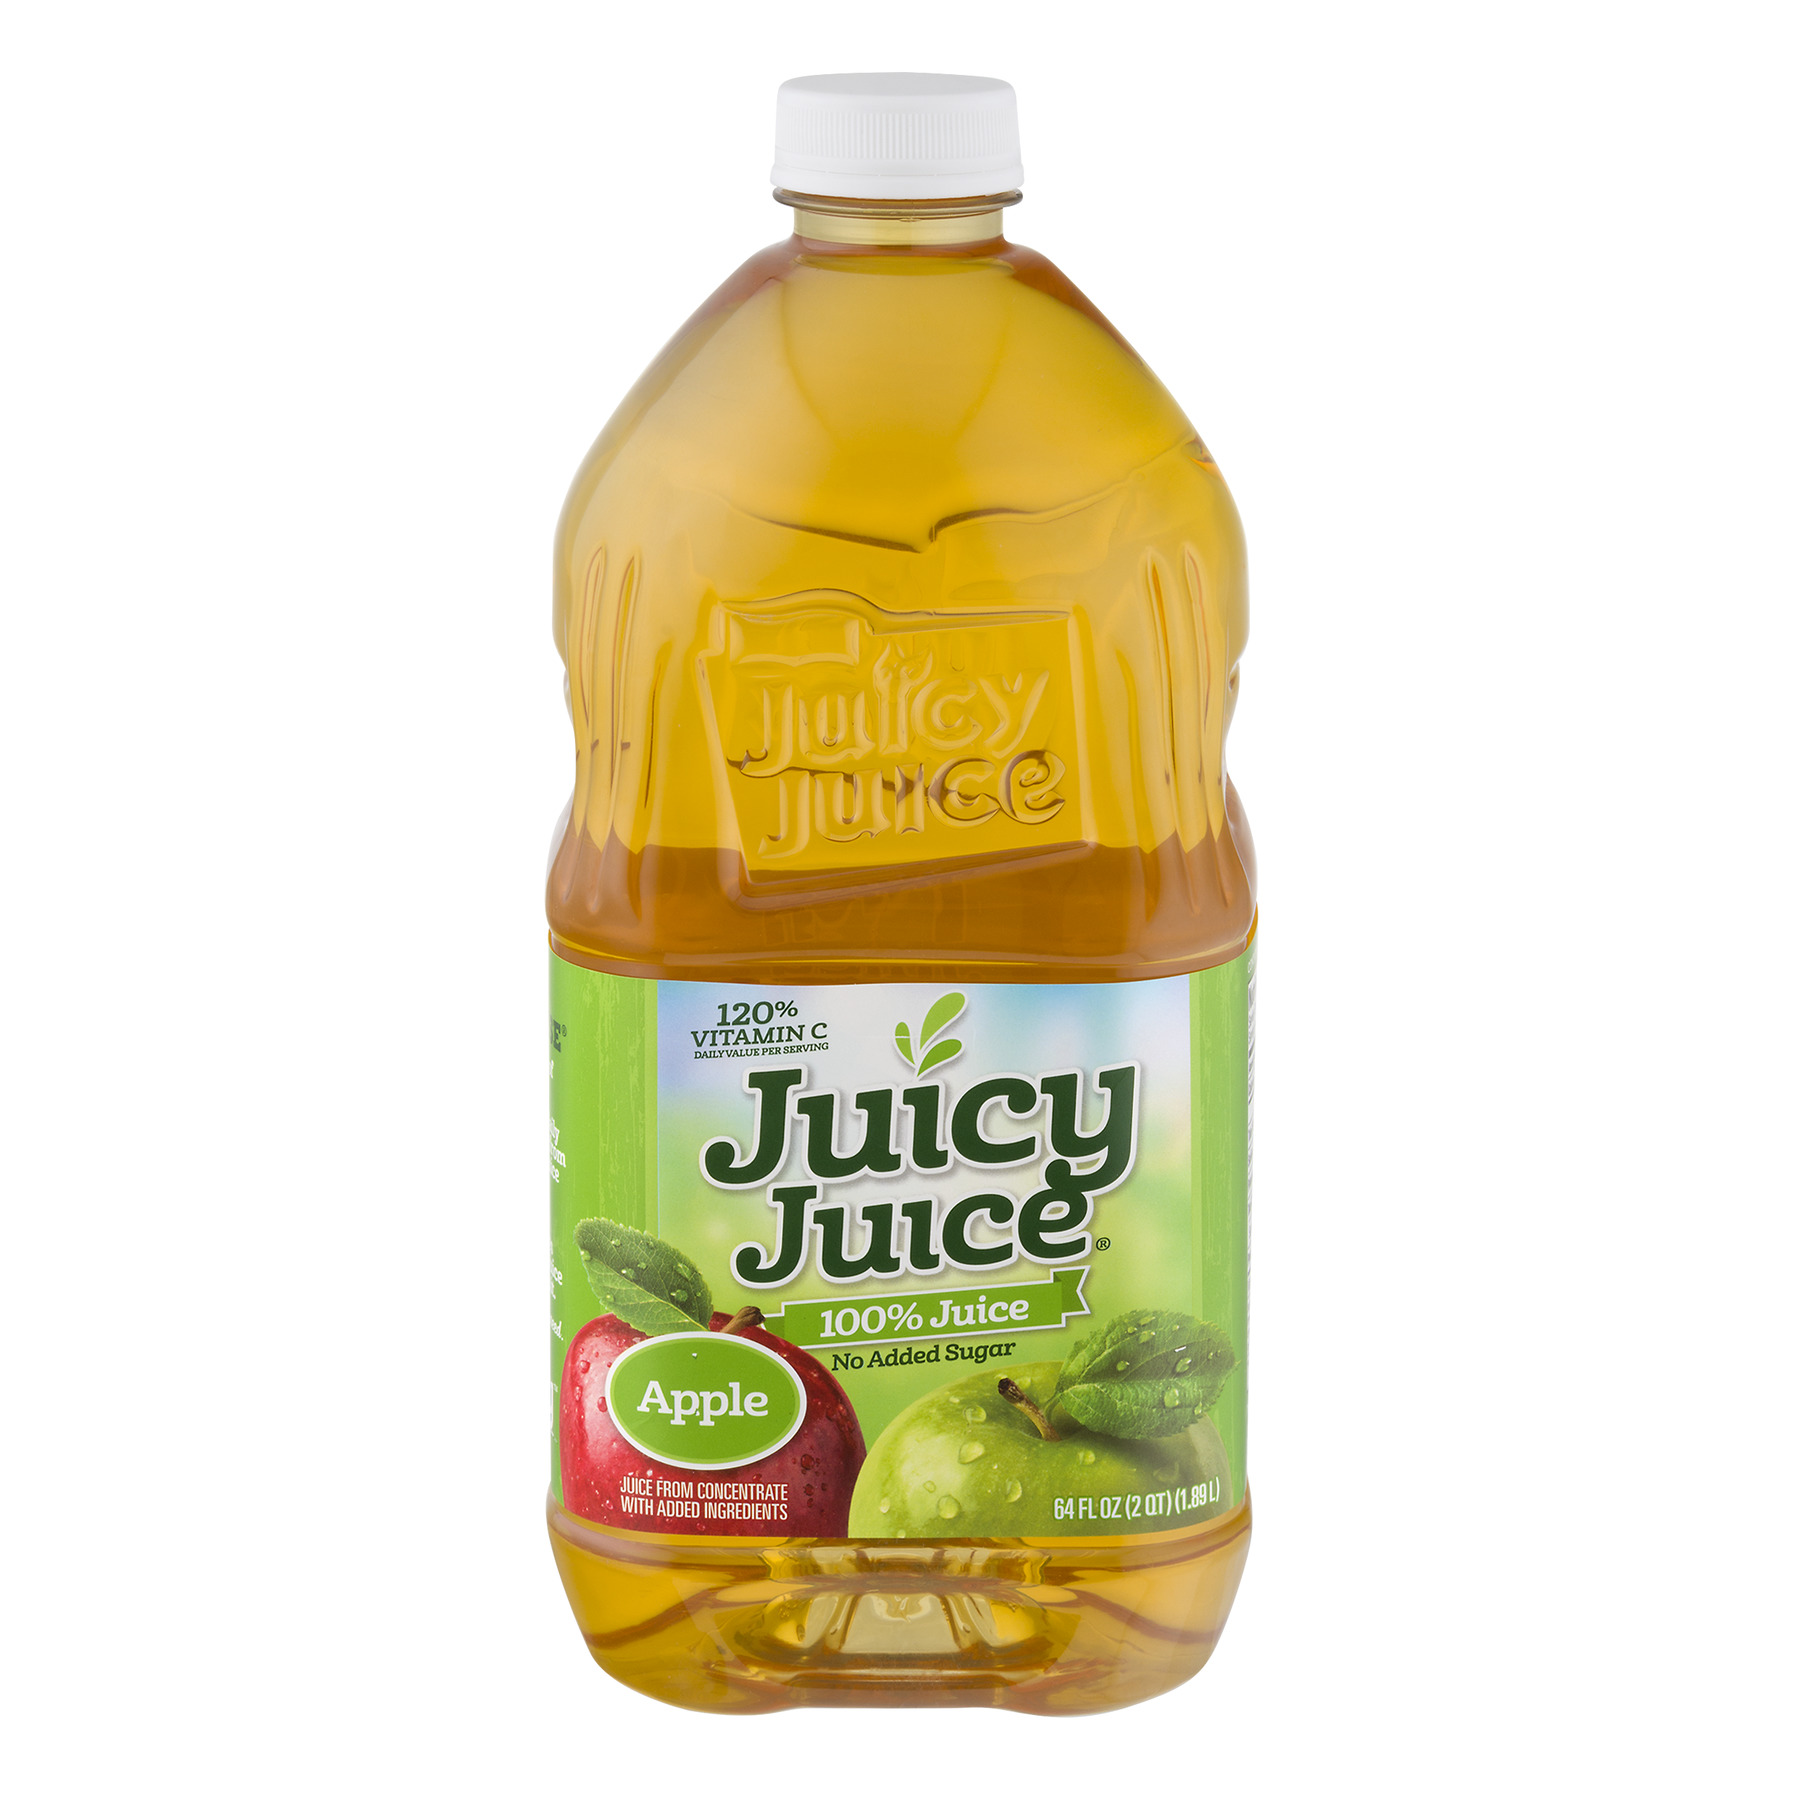 Juicy Juice 100% Juice, Apple, 64 Fl Oz, 1 Count